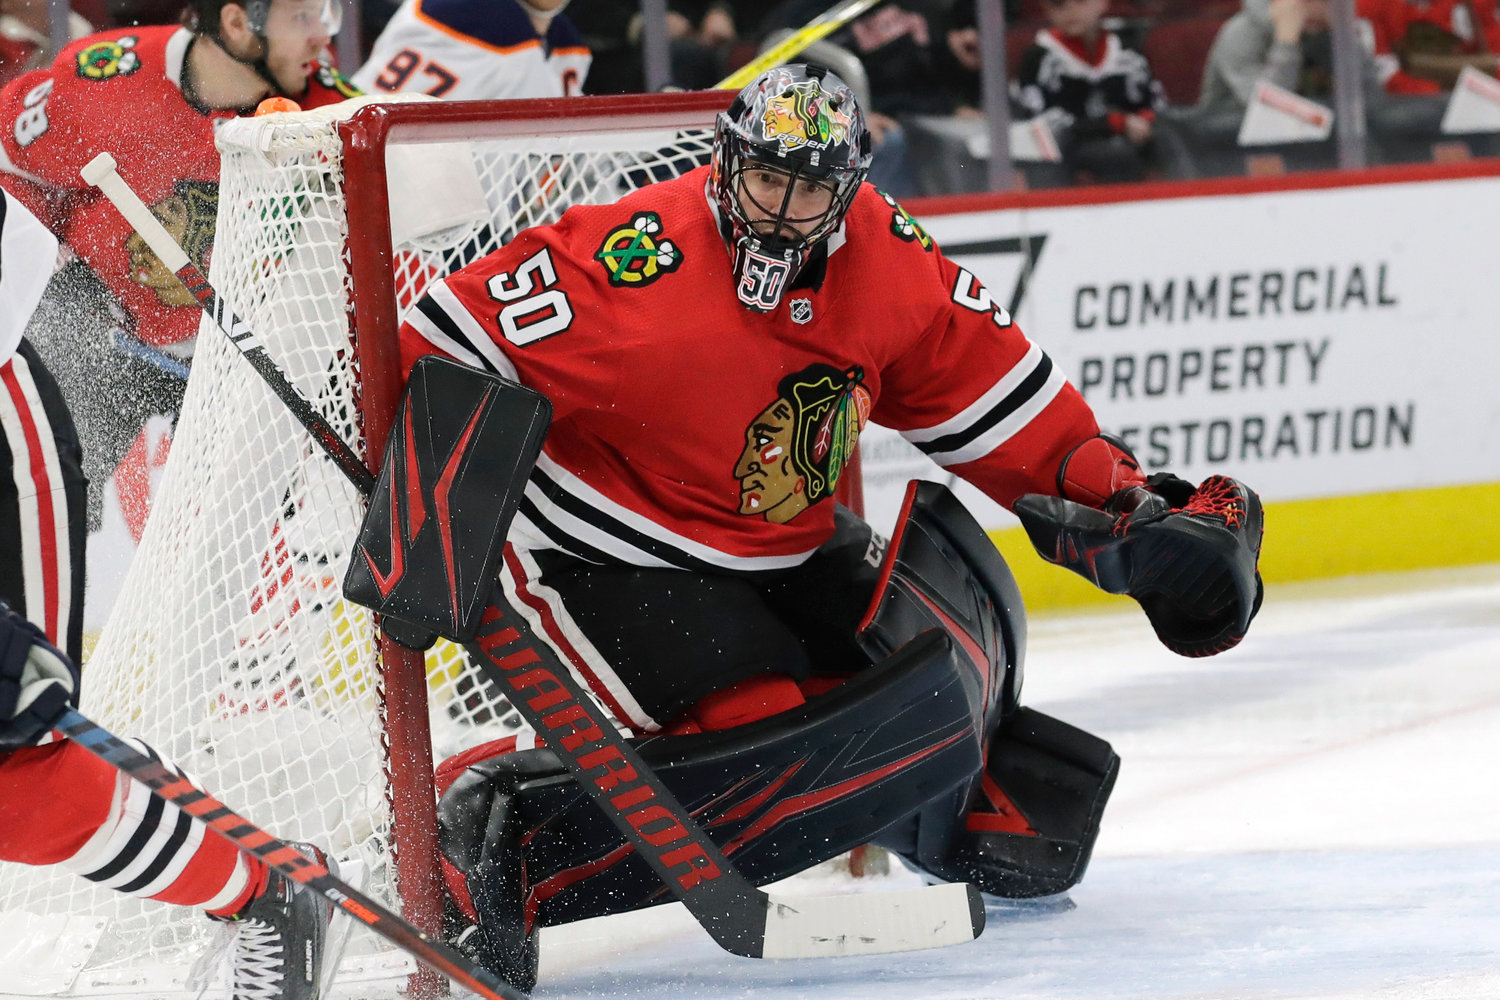 HANGING HIS SKATES UP — In this March 5, 2020, file photo, then-Chicago Blackhawks goalie Corey Crawford watches the puck during the second period of an NHL game against Edmonton in Chicago. Crawford, who helped the Blackhawks win two Stanley Cups, retired Saturday less than three months after signing with the New Jersey Devils and less than a week before the start of the NHL season.